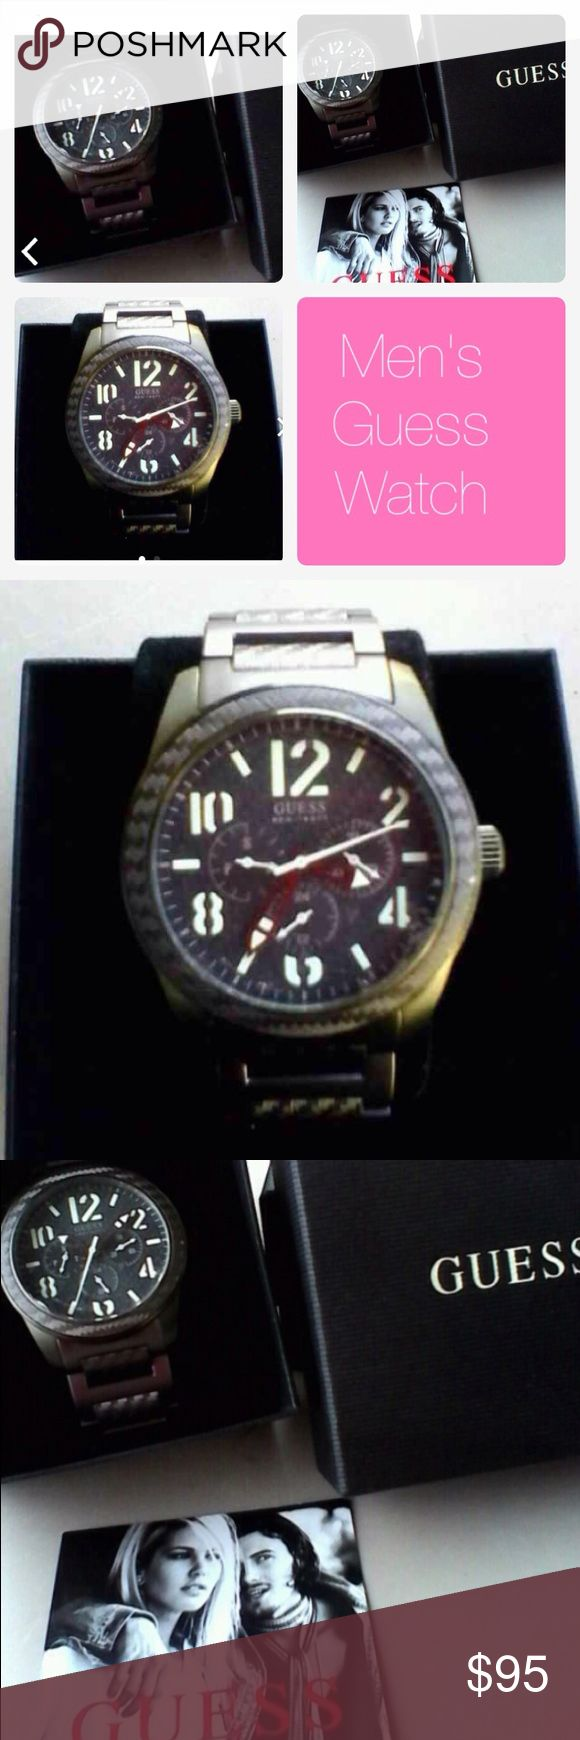 🆕Men's Guess Watch Gunmetal tone Men's Guess Watch, this watch has glow in the dark numbers and hands. This watch is new never used. Guess Accessories Watches